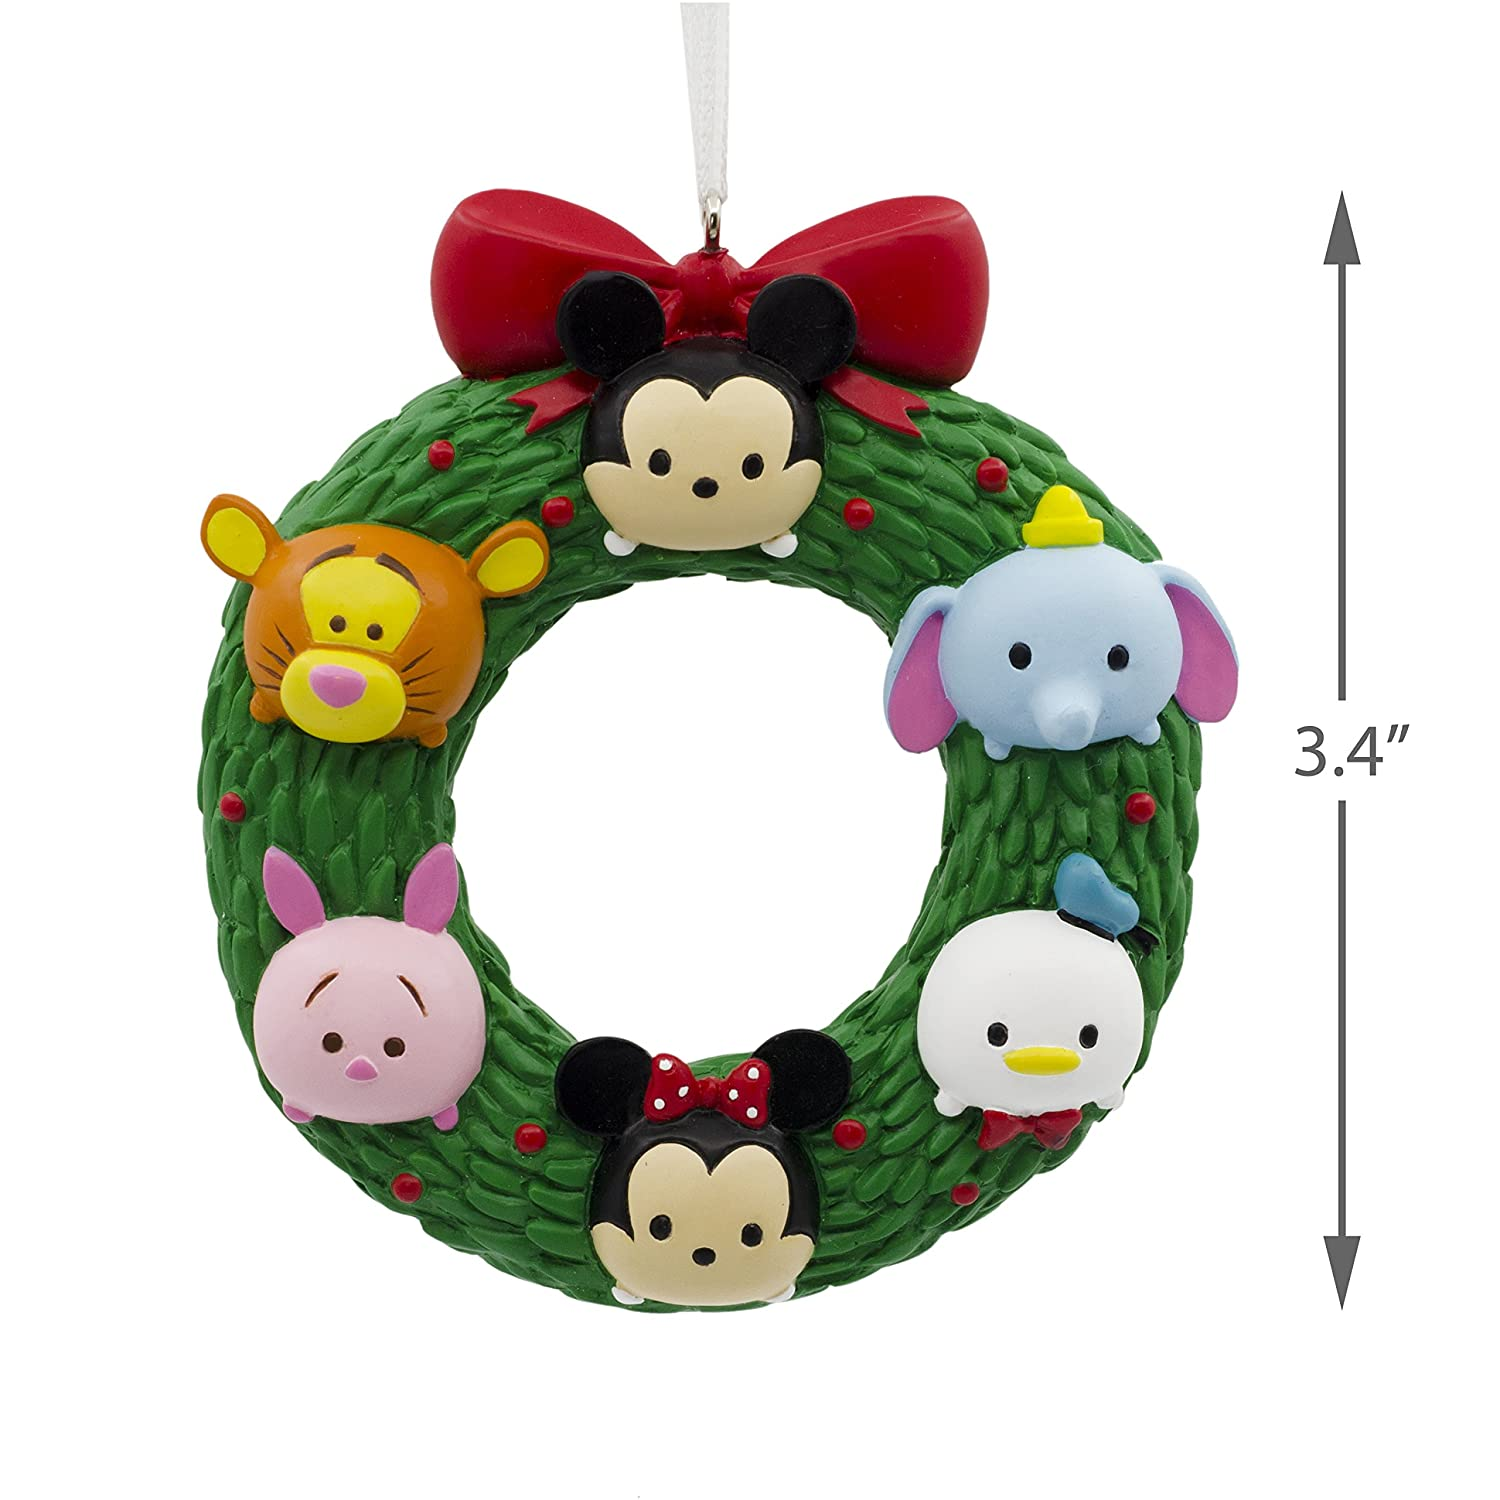 Tigger Christmas Ornaments.Hallmark Christmas Ornament Disney Tsum Wreath Mickey Minnie Mouse Winnie The Pooh Donald Duck Dumbo Tigger Piglet